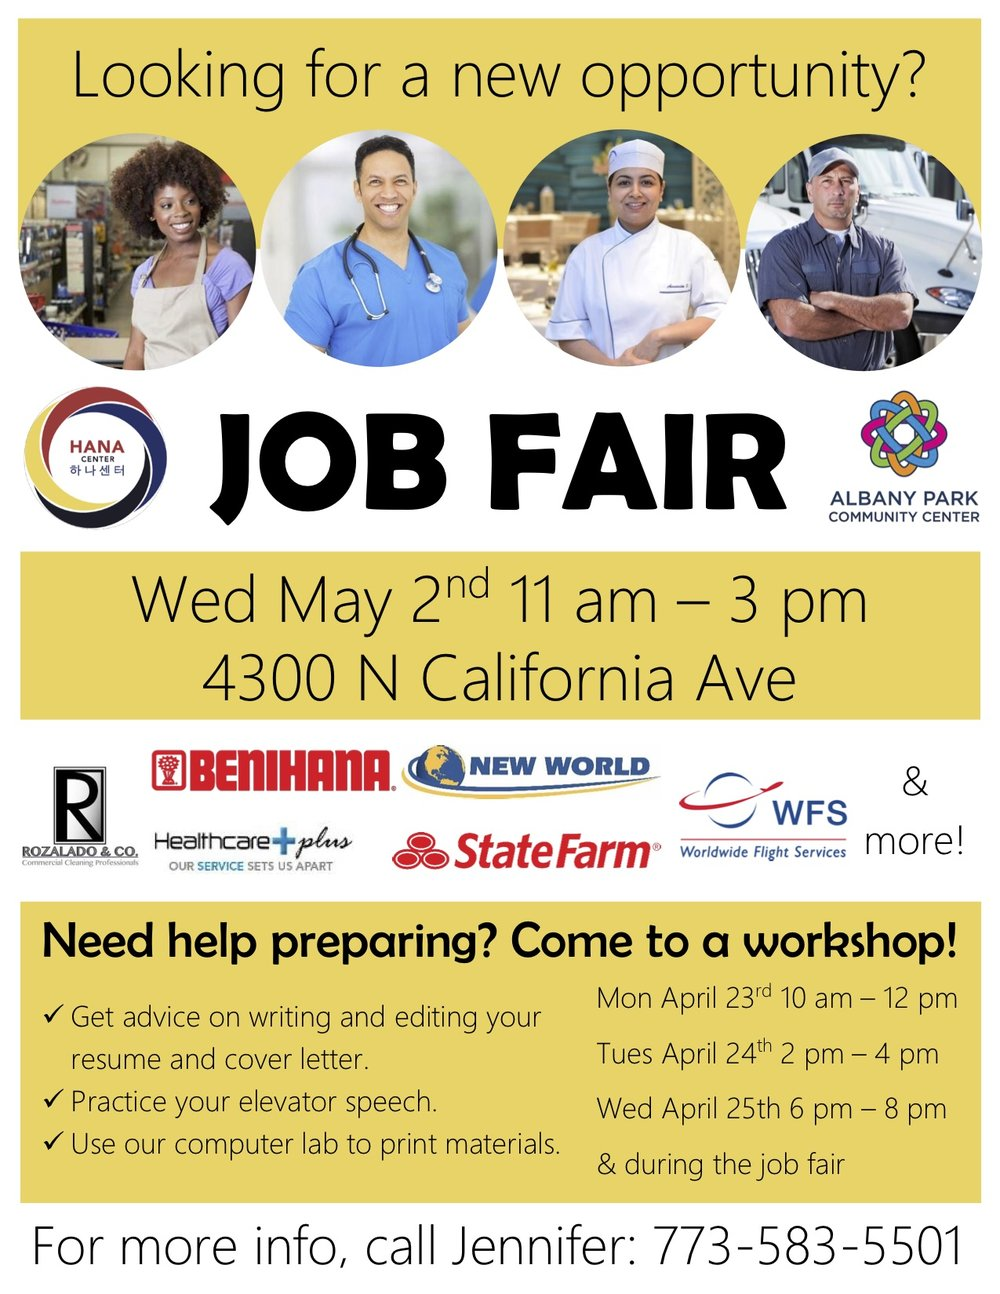 Job Fair Flyer 2018.jpg